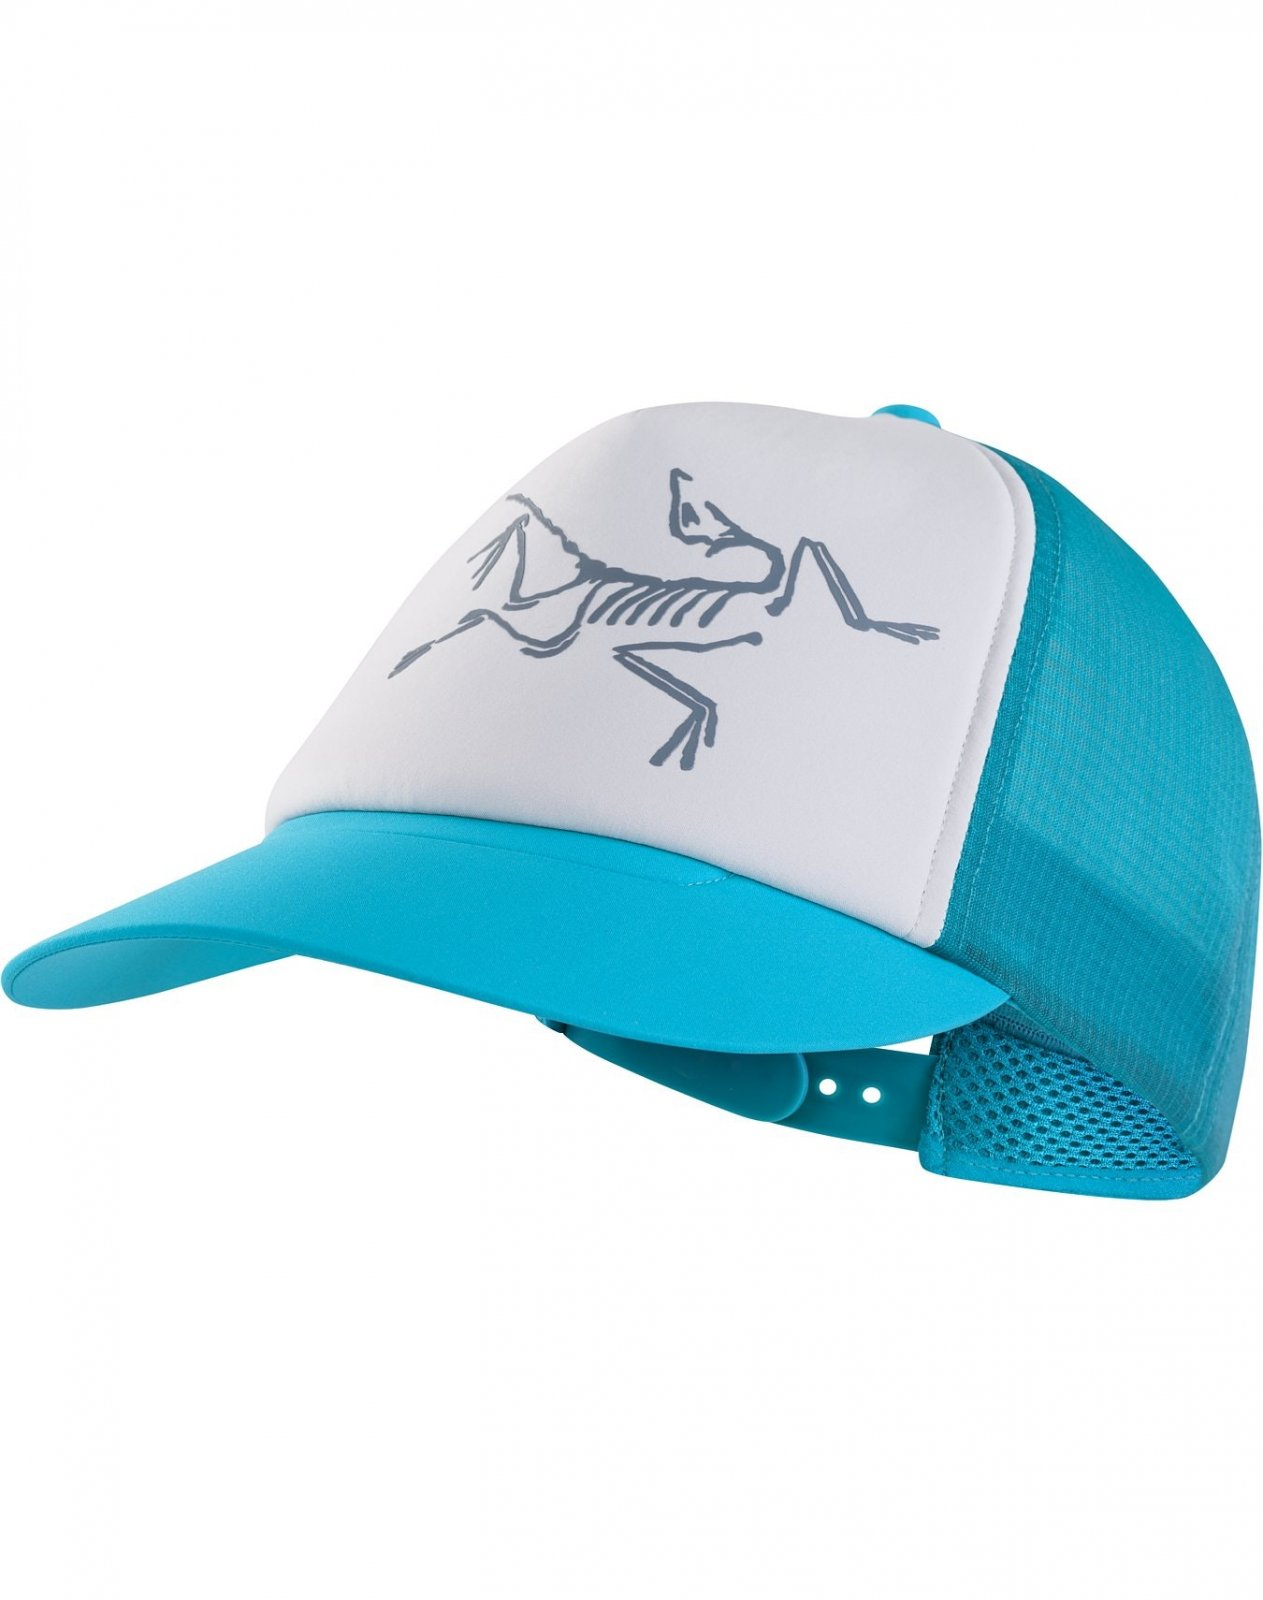 Кепка ARCTERYX Bird Trucker